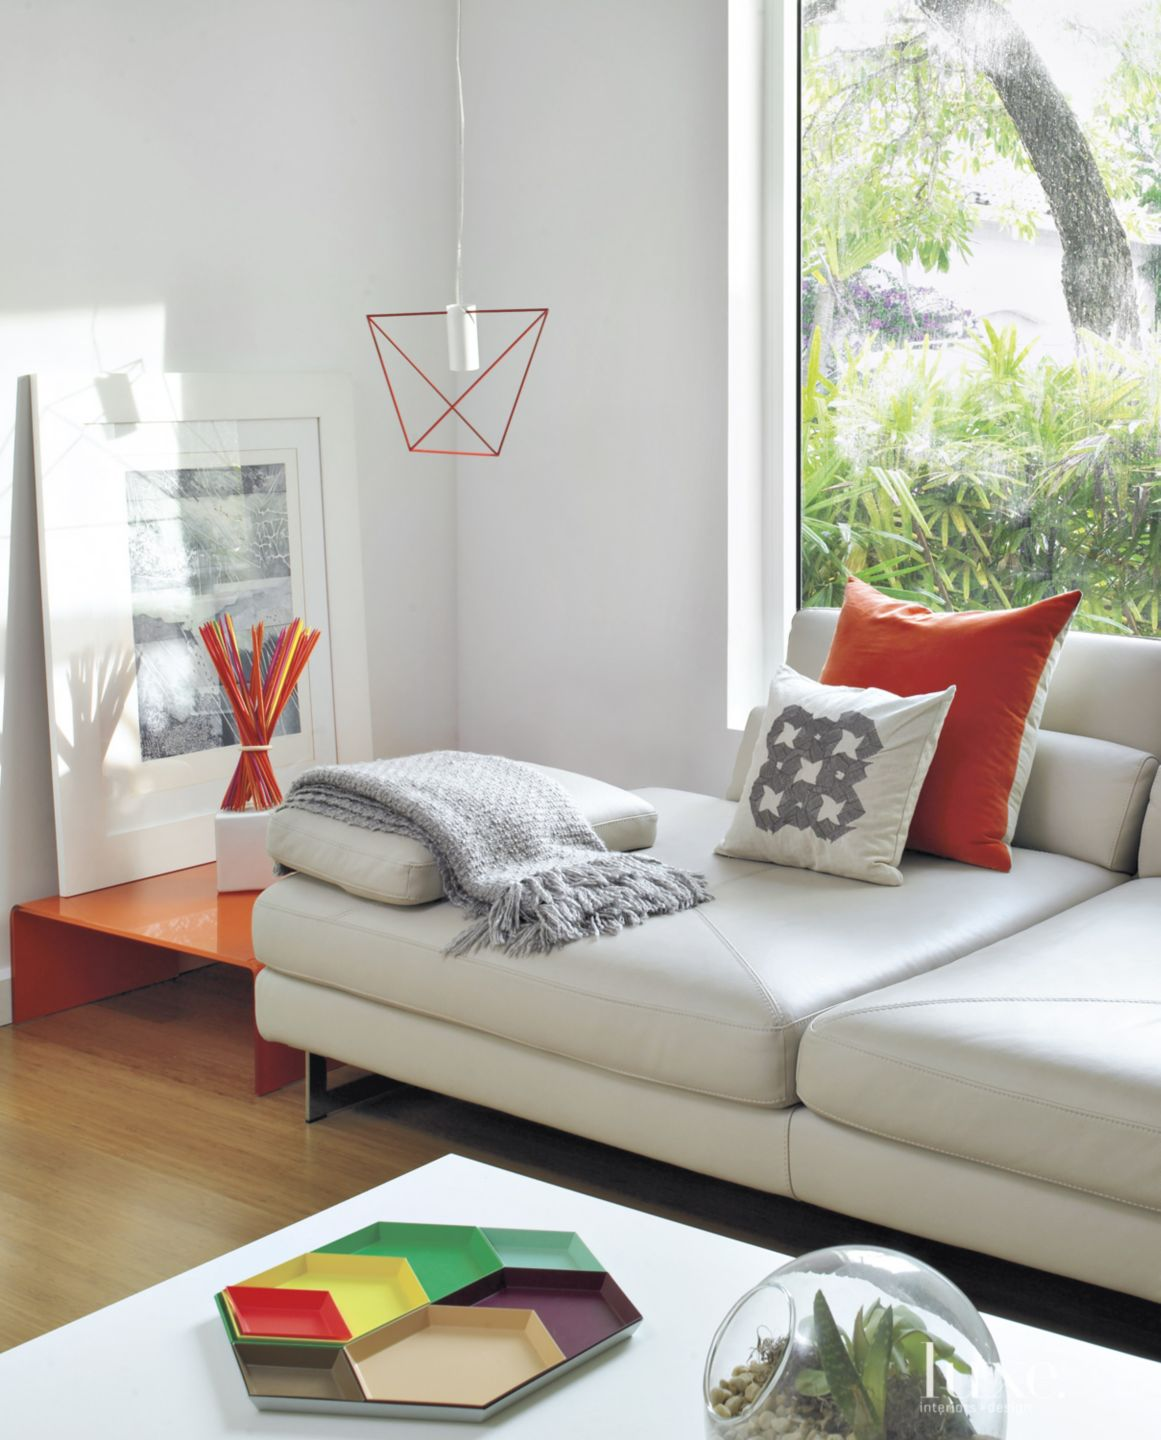 Modern White Sitting Area with Geometric Tray